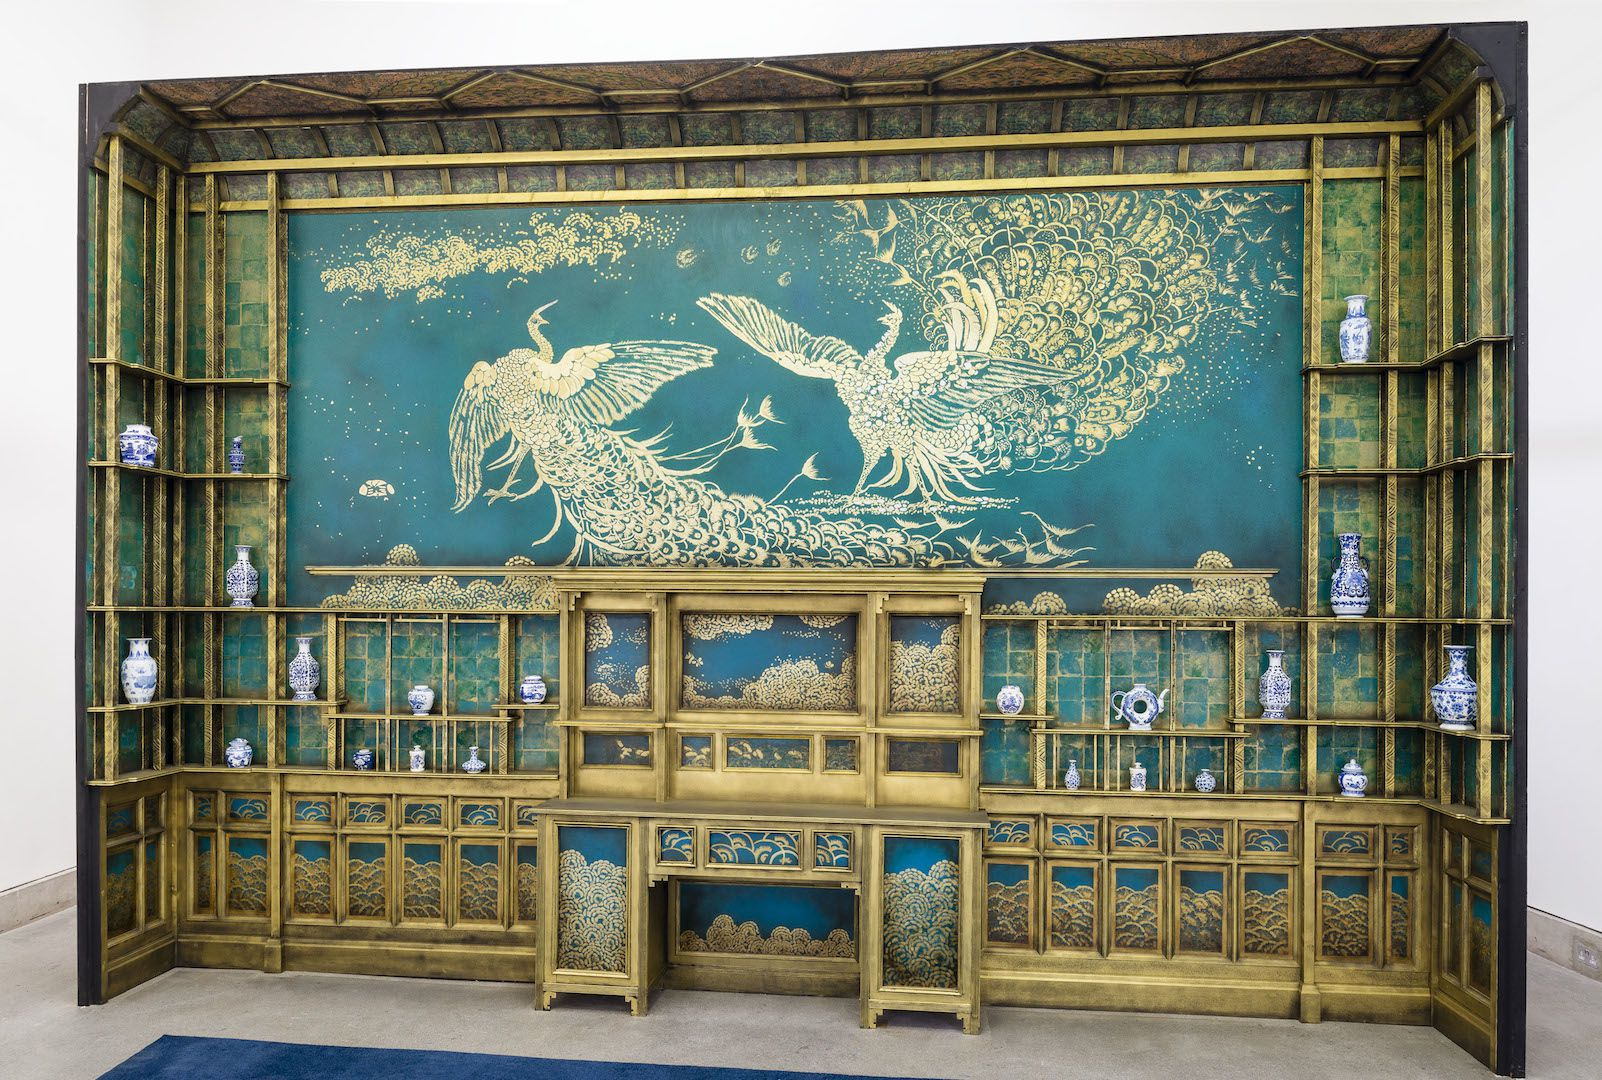 James McNeill Whistler, Harmony in Blue and Gold: The Peacock Room, 1876–77. Reproduction by Olivia du Monceau, 2014 . Photograph by Roger Sinek.